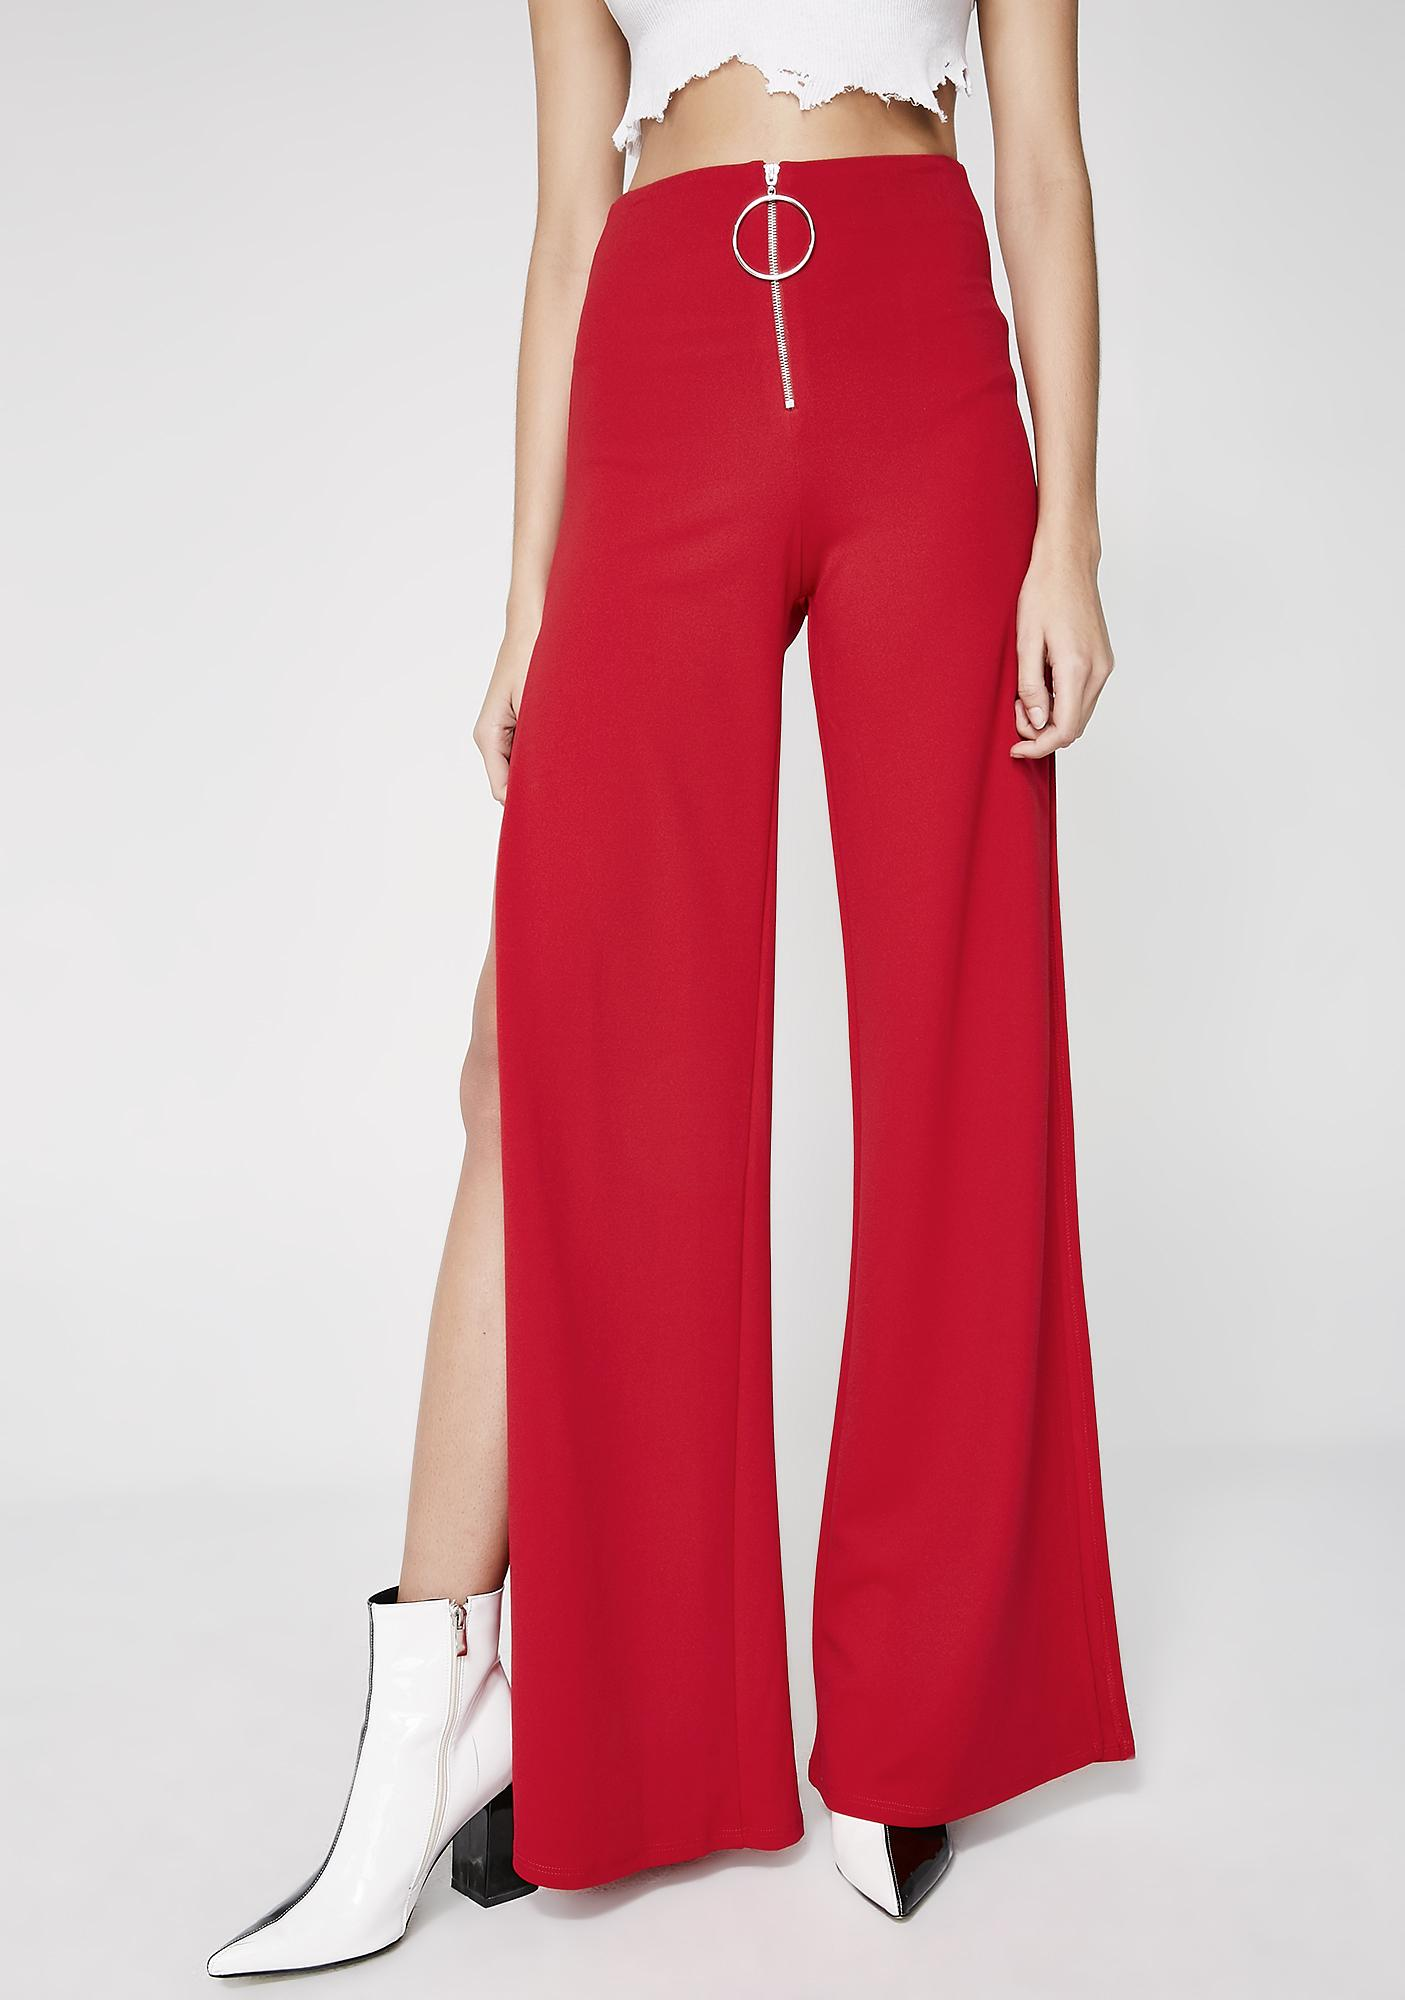 Servin' All Day Slit Trousers